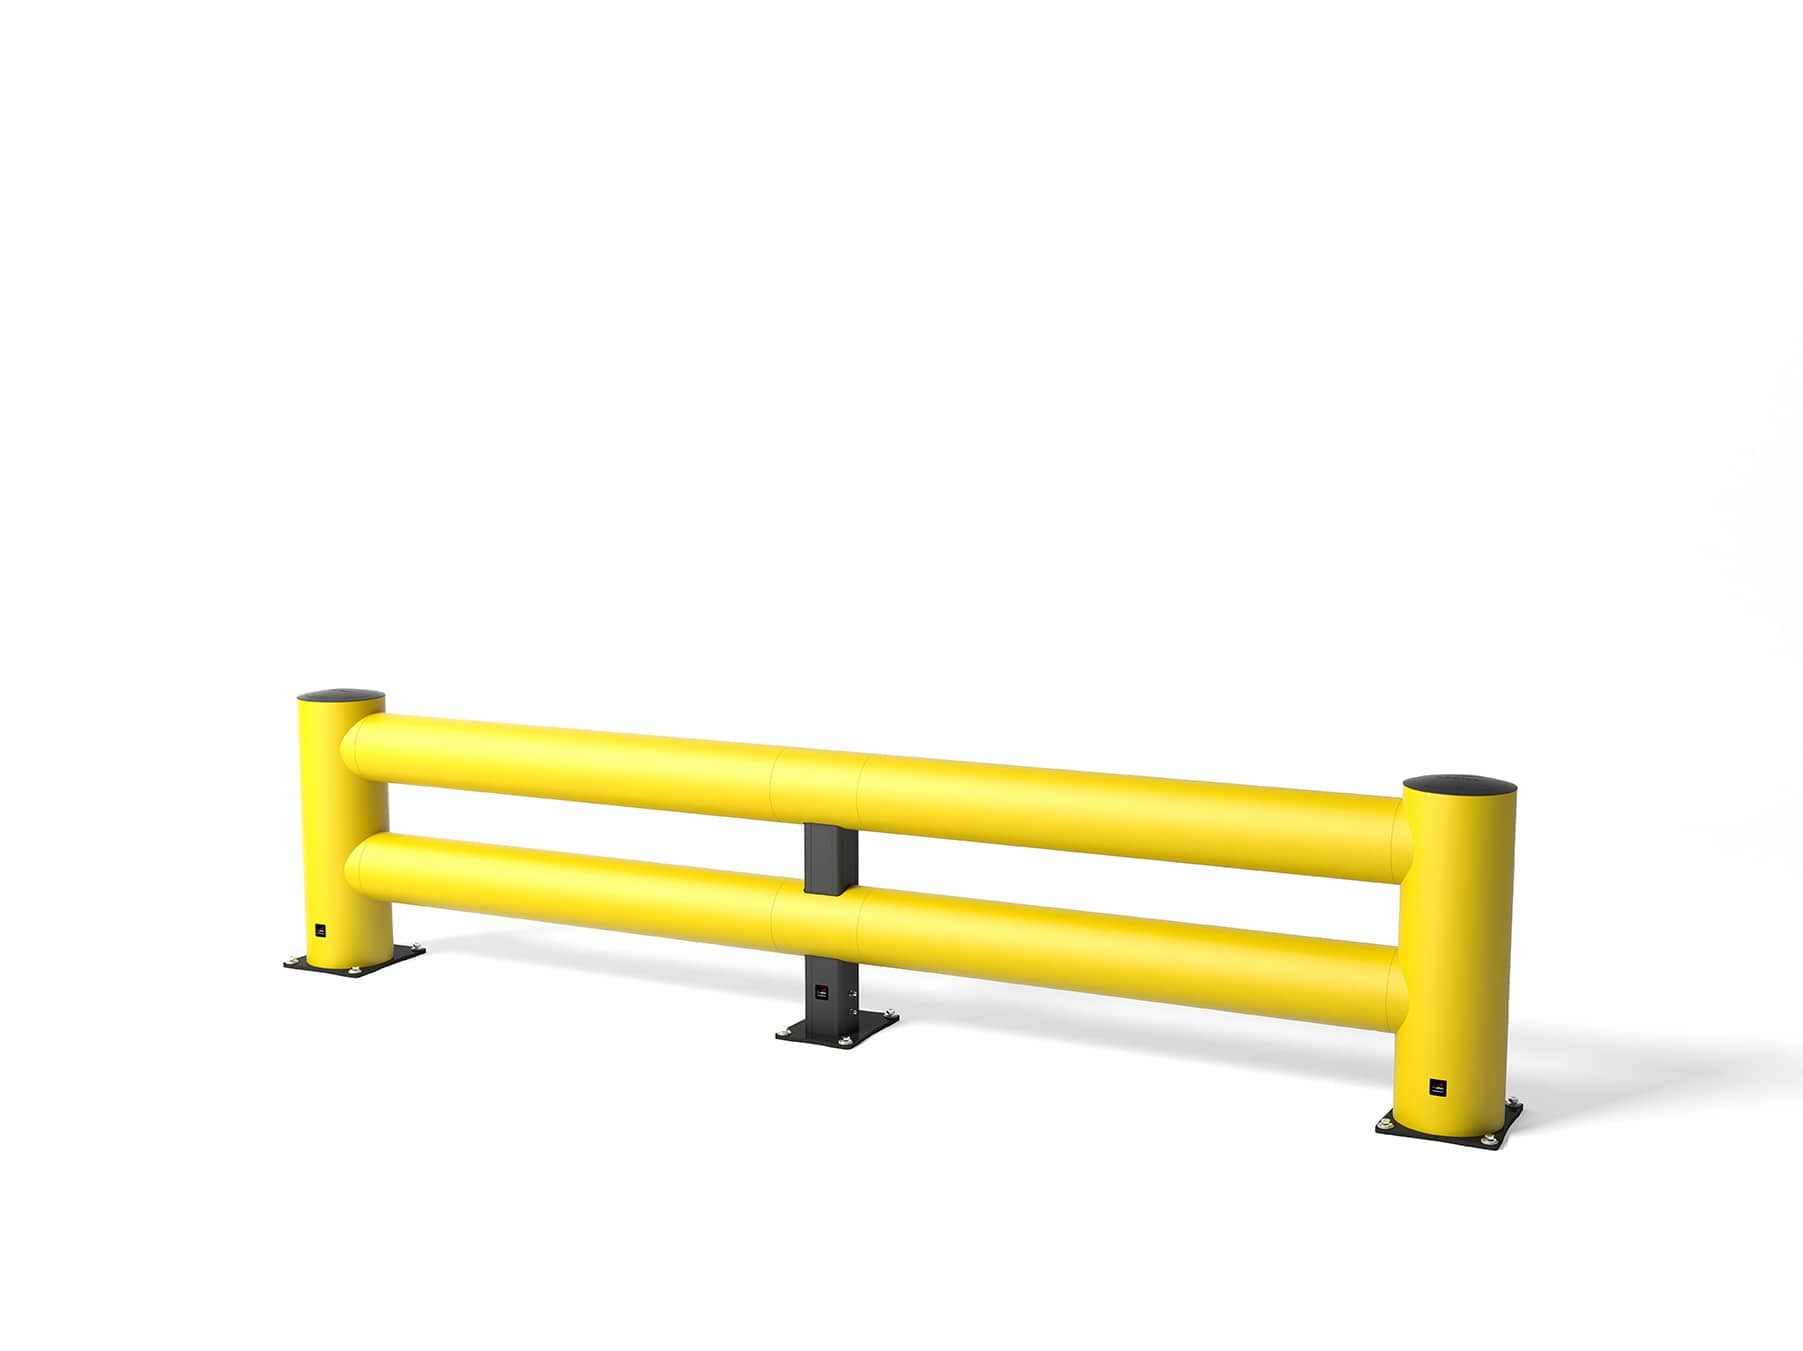 flex-impact-traffic-safety-barrier-tb_double-min.jpg